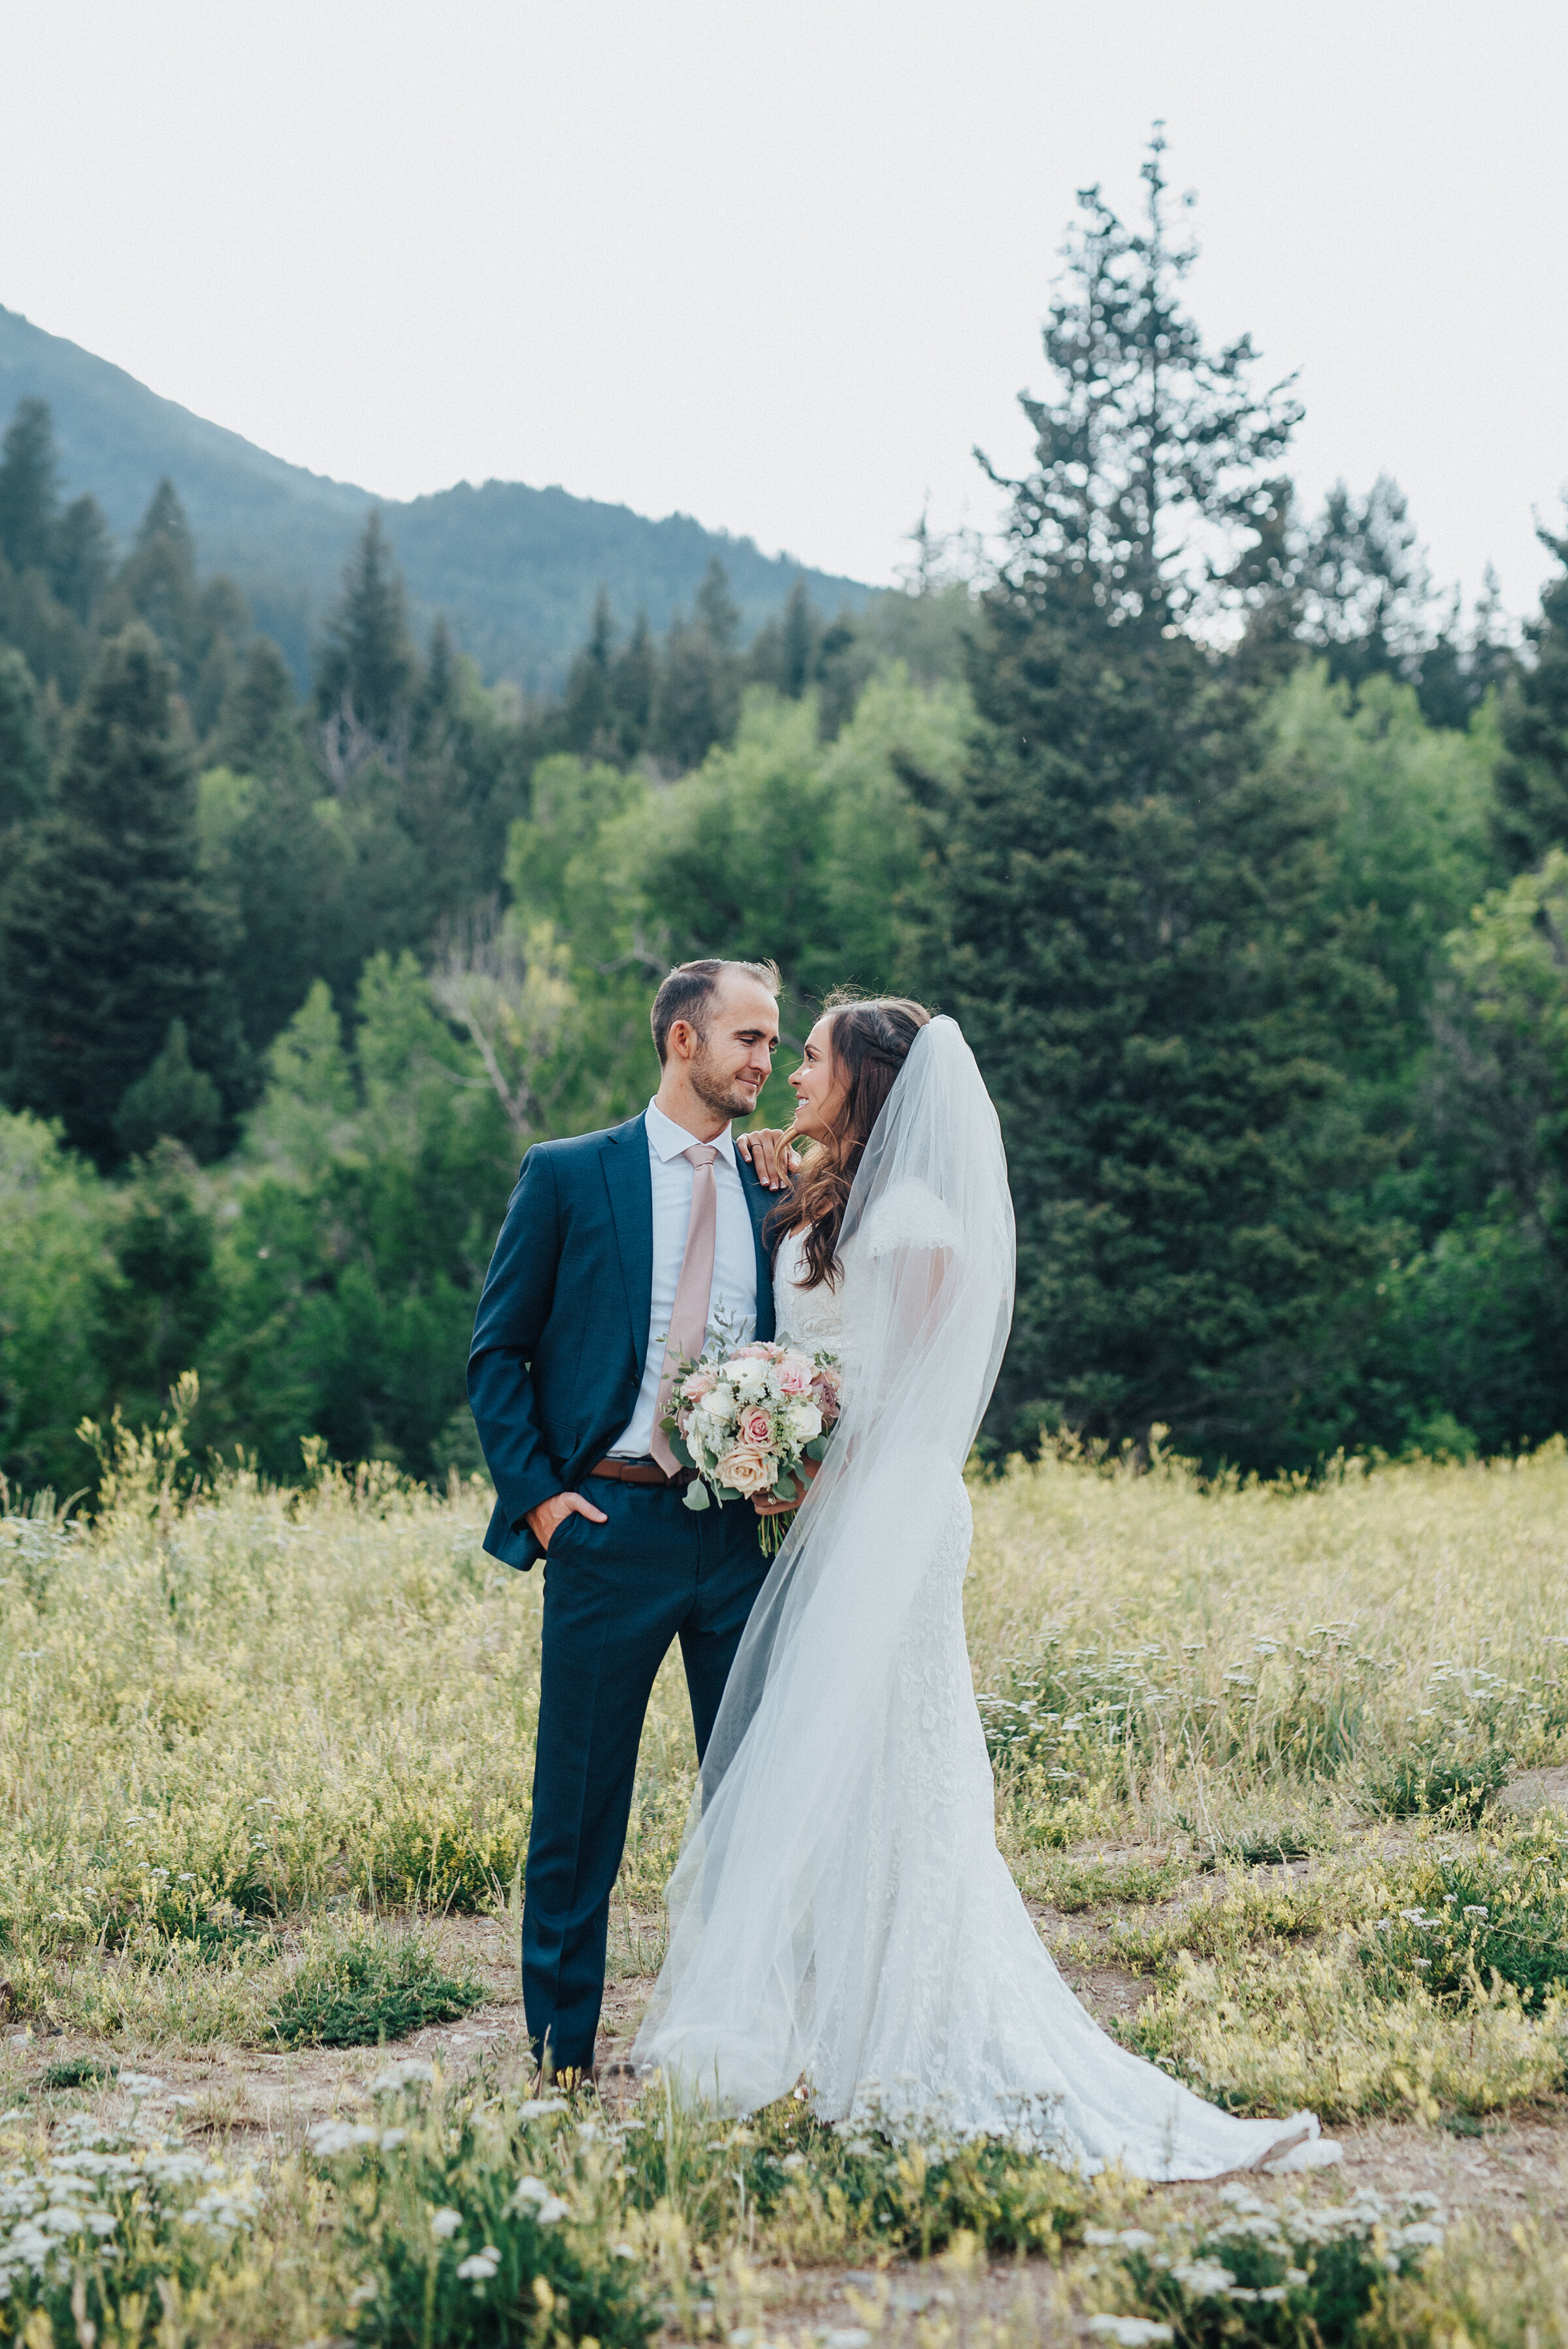 An enamored couple looks at each other while standing in an open grassy area before the woods.Light pink bouquet and tie navy blue suit evergreen trees mountainside background grassy terrain American Fork Canyon Tibble Fork Reservoir full length veil #husbandandwife #younglove #tibbleforkreservoir #utahwedding #americanforkcanyon #coupleshoot #formals #weddingphotography #couplesgoals #couplephotography #weddingphotographer #couplesphotography #groom #bride